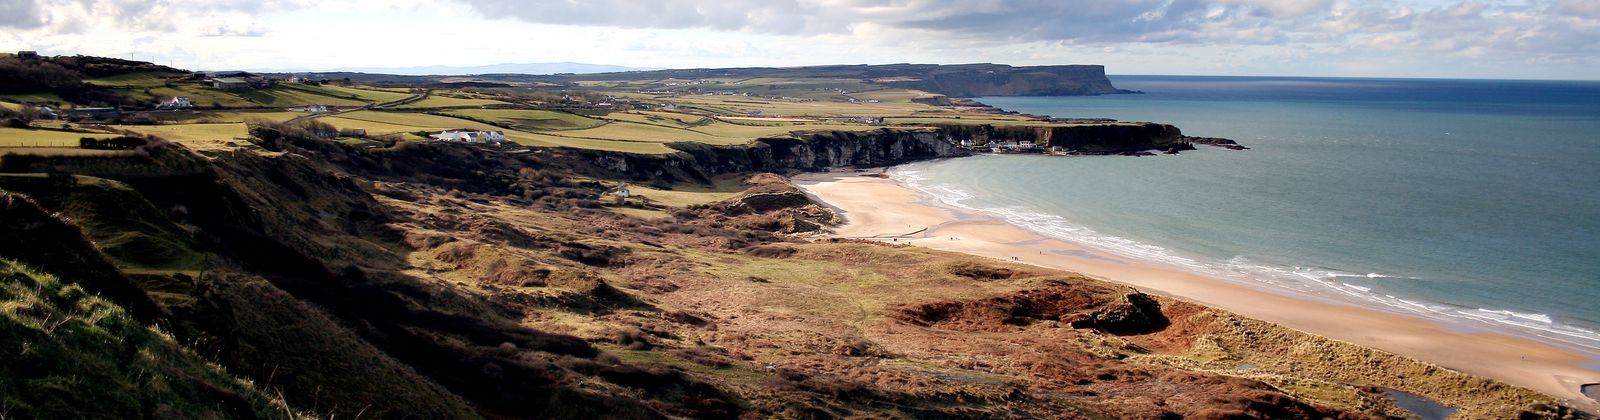 10 of the best beaches in the UK